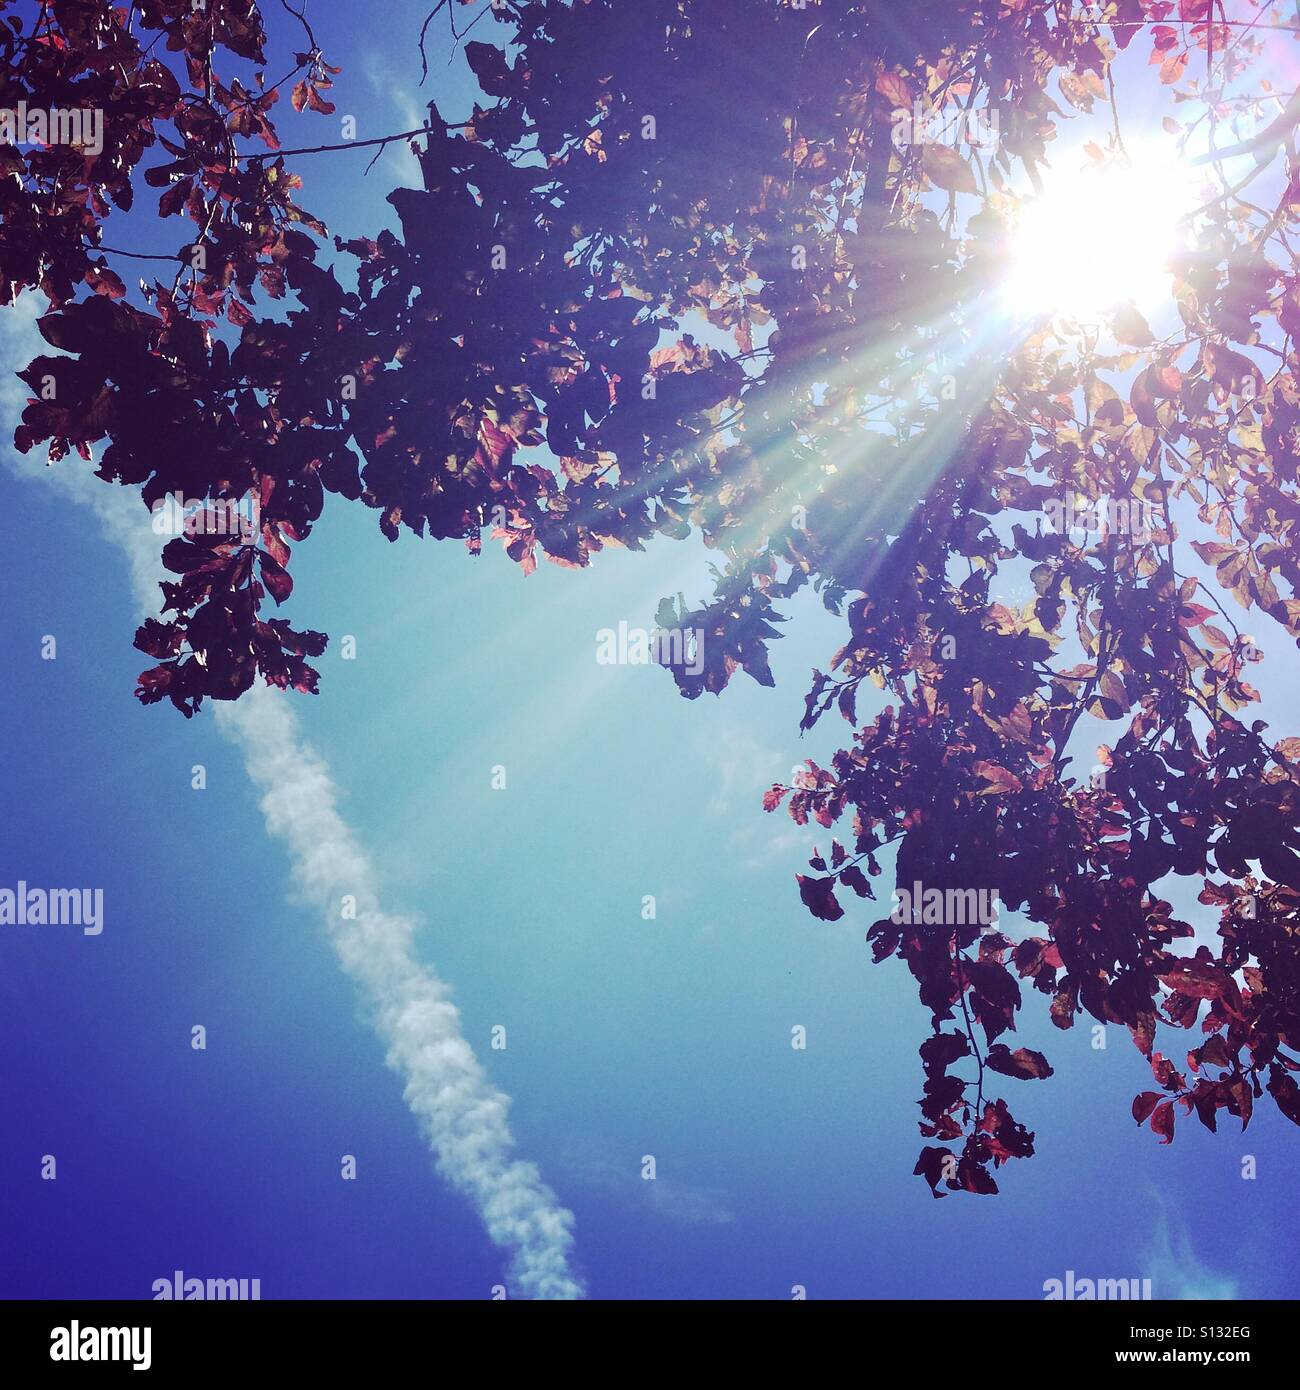 Sun shining through the leaves of a tree.  Blue sky with vapour trail. - Stock Image